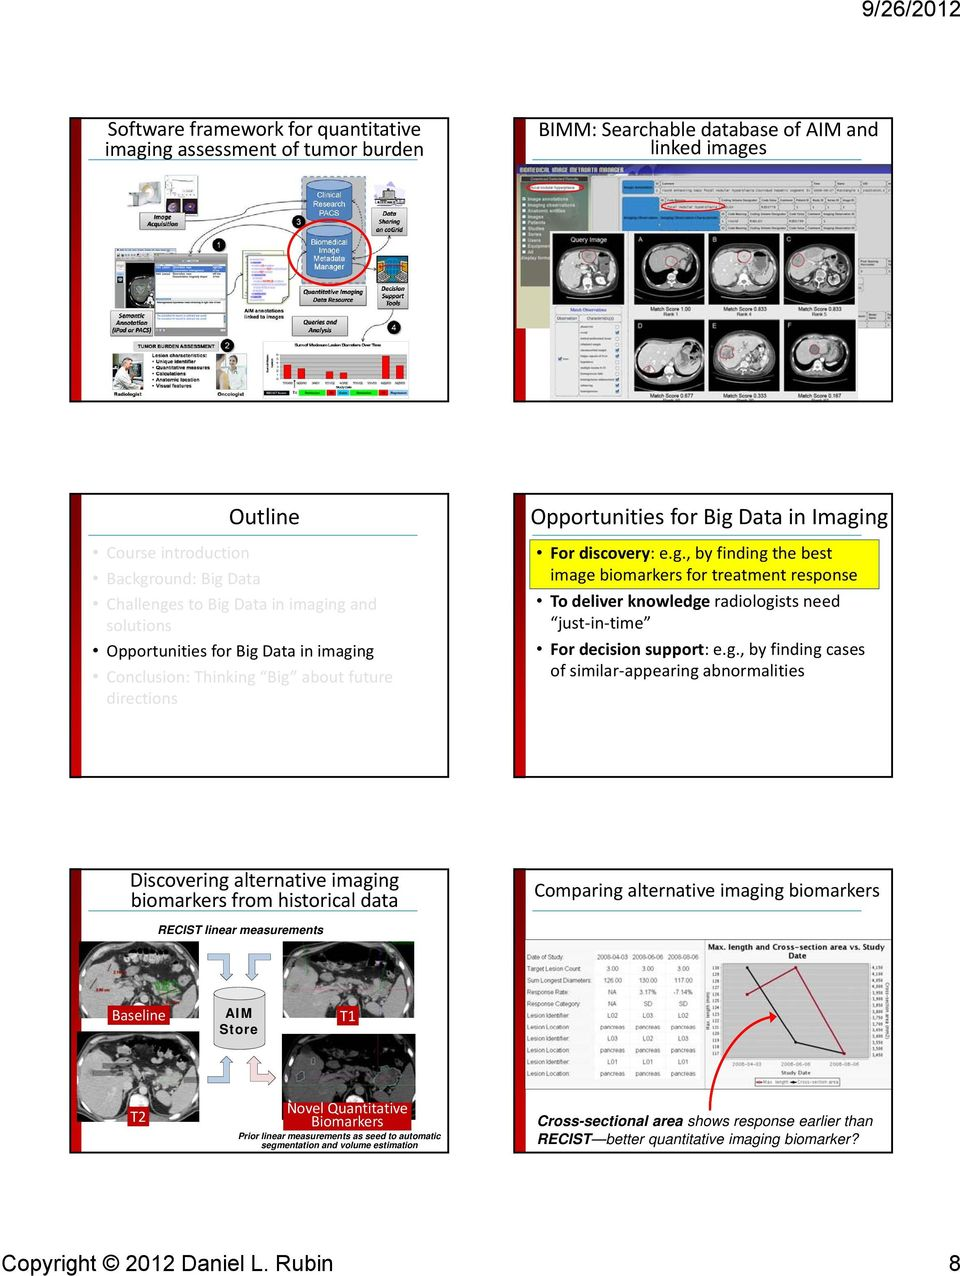 g., by finding cases of similar appearing abnormalities Discovering alternative imaging biomarkers from historical data Comparing alternative imaging biomarkers RECIST linear measurements Baseline